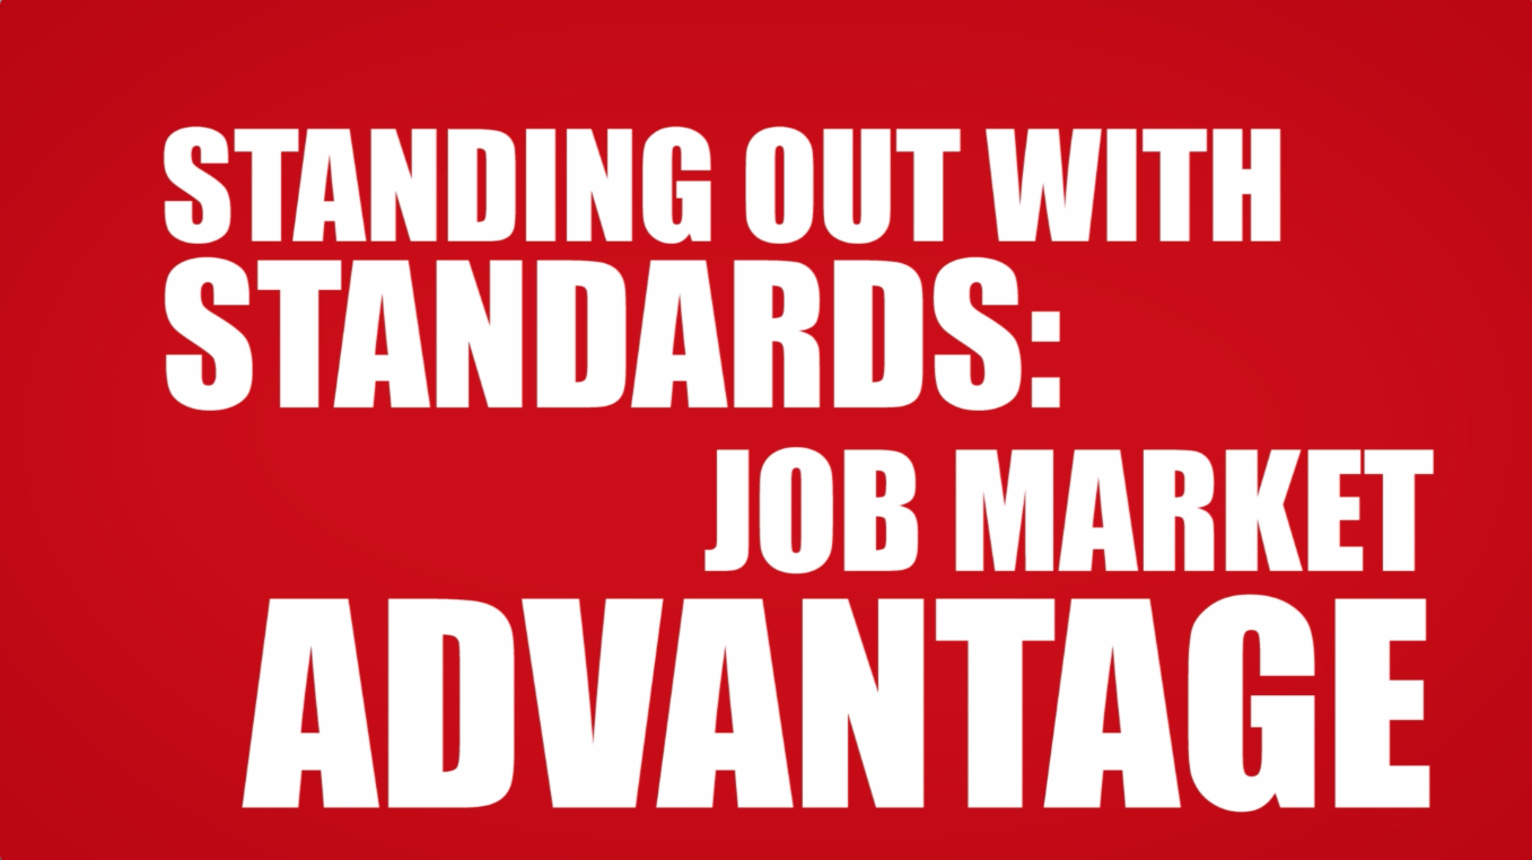 Job Market Advantage: Standing Out with Standards